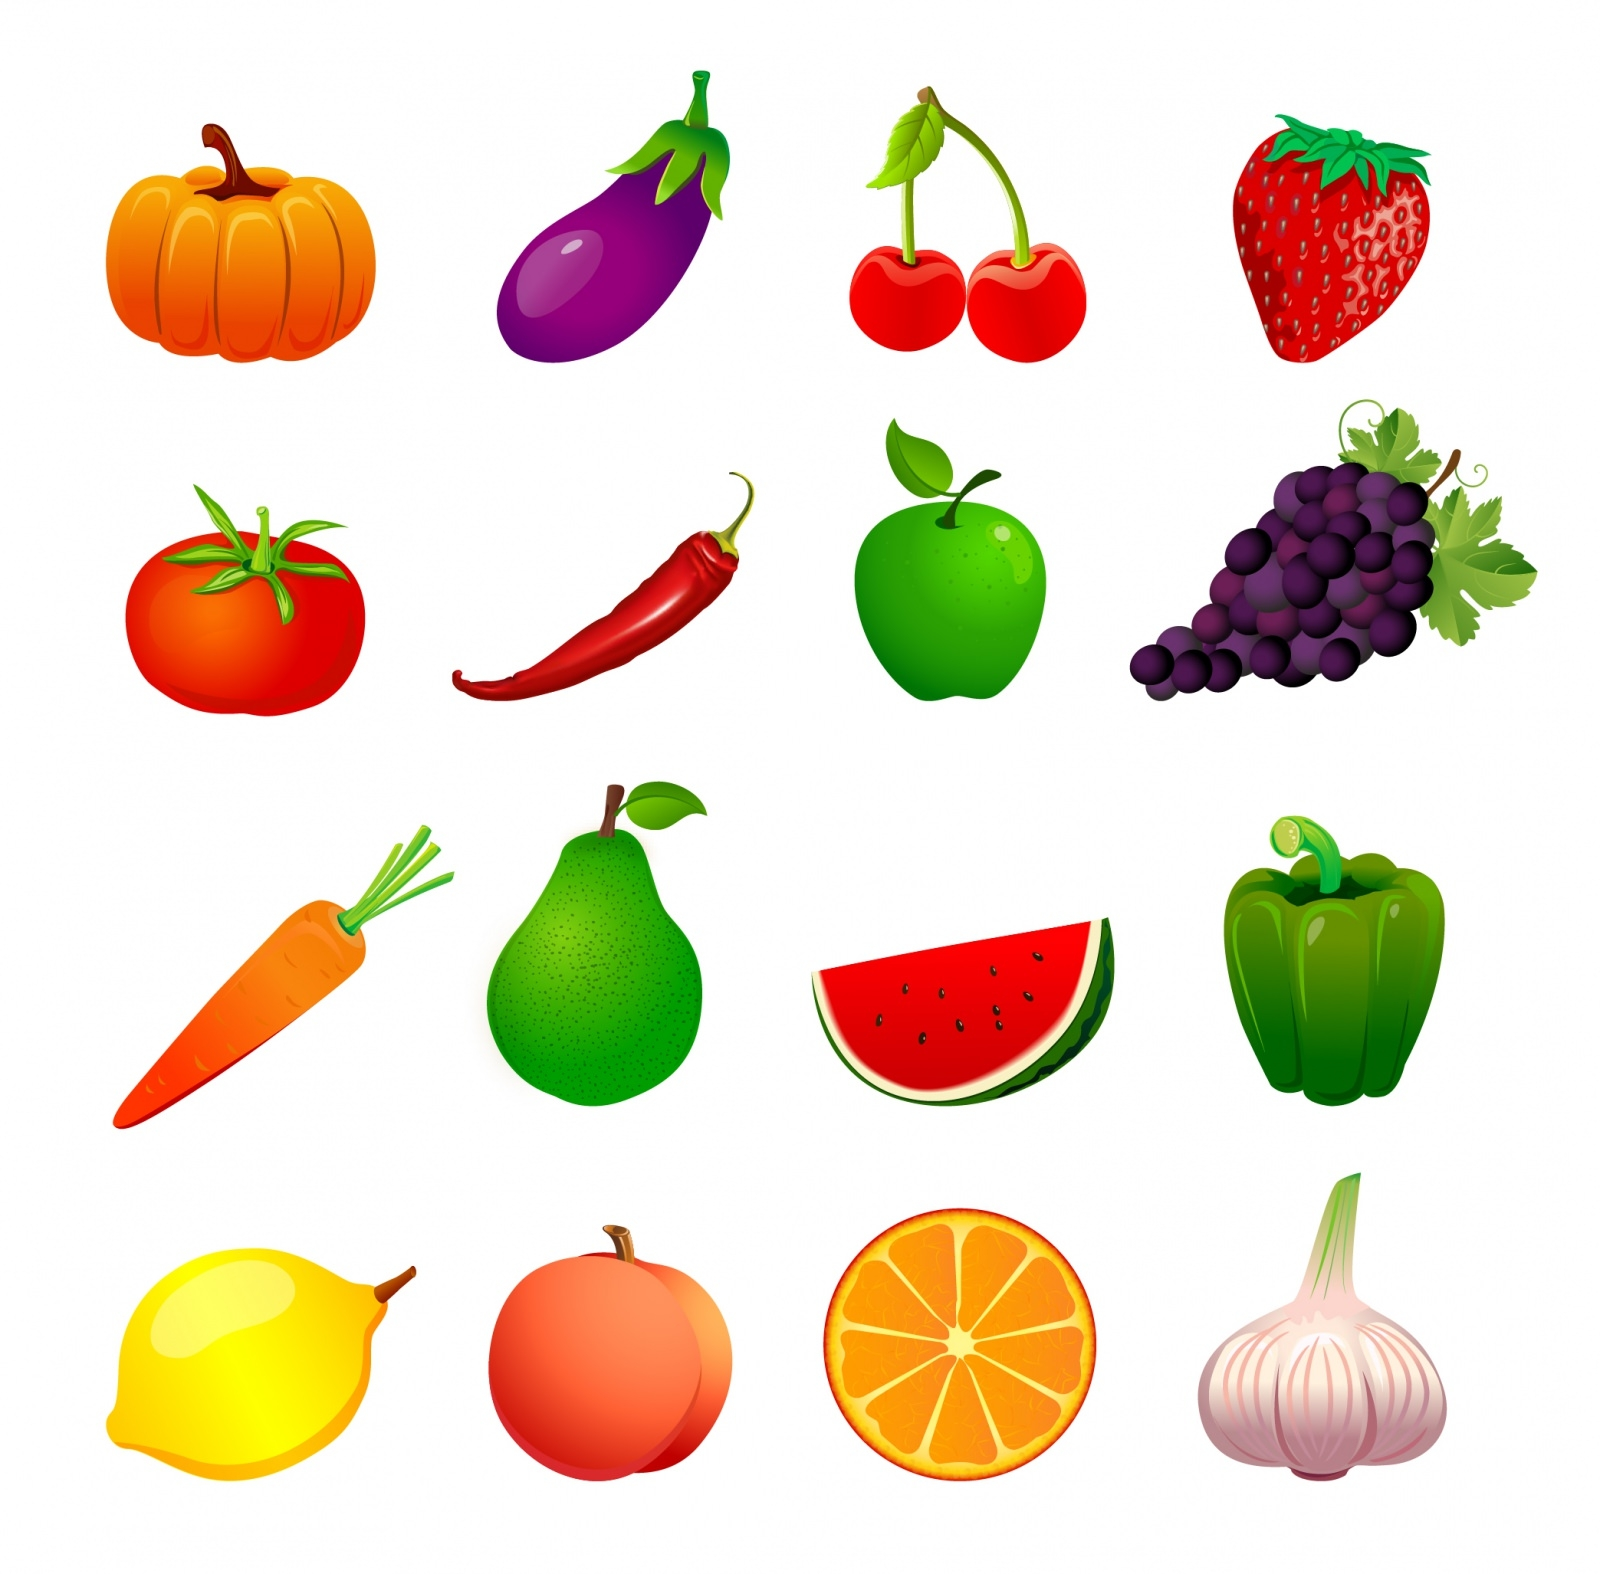 Fruit_and_Veggies